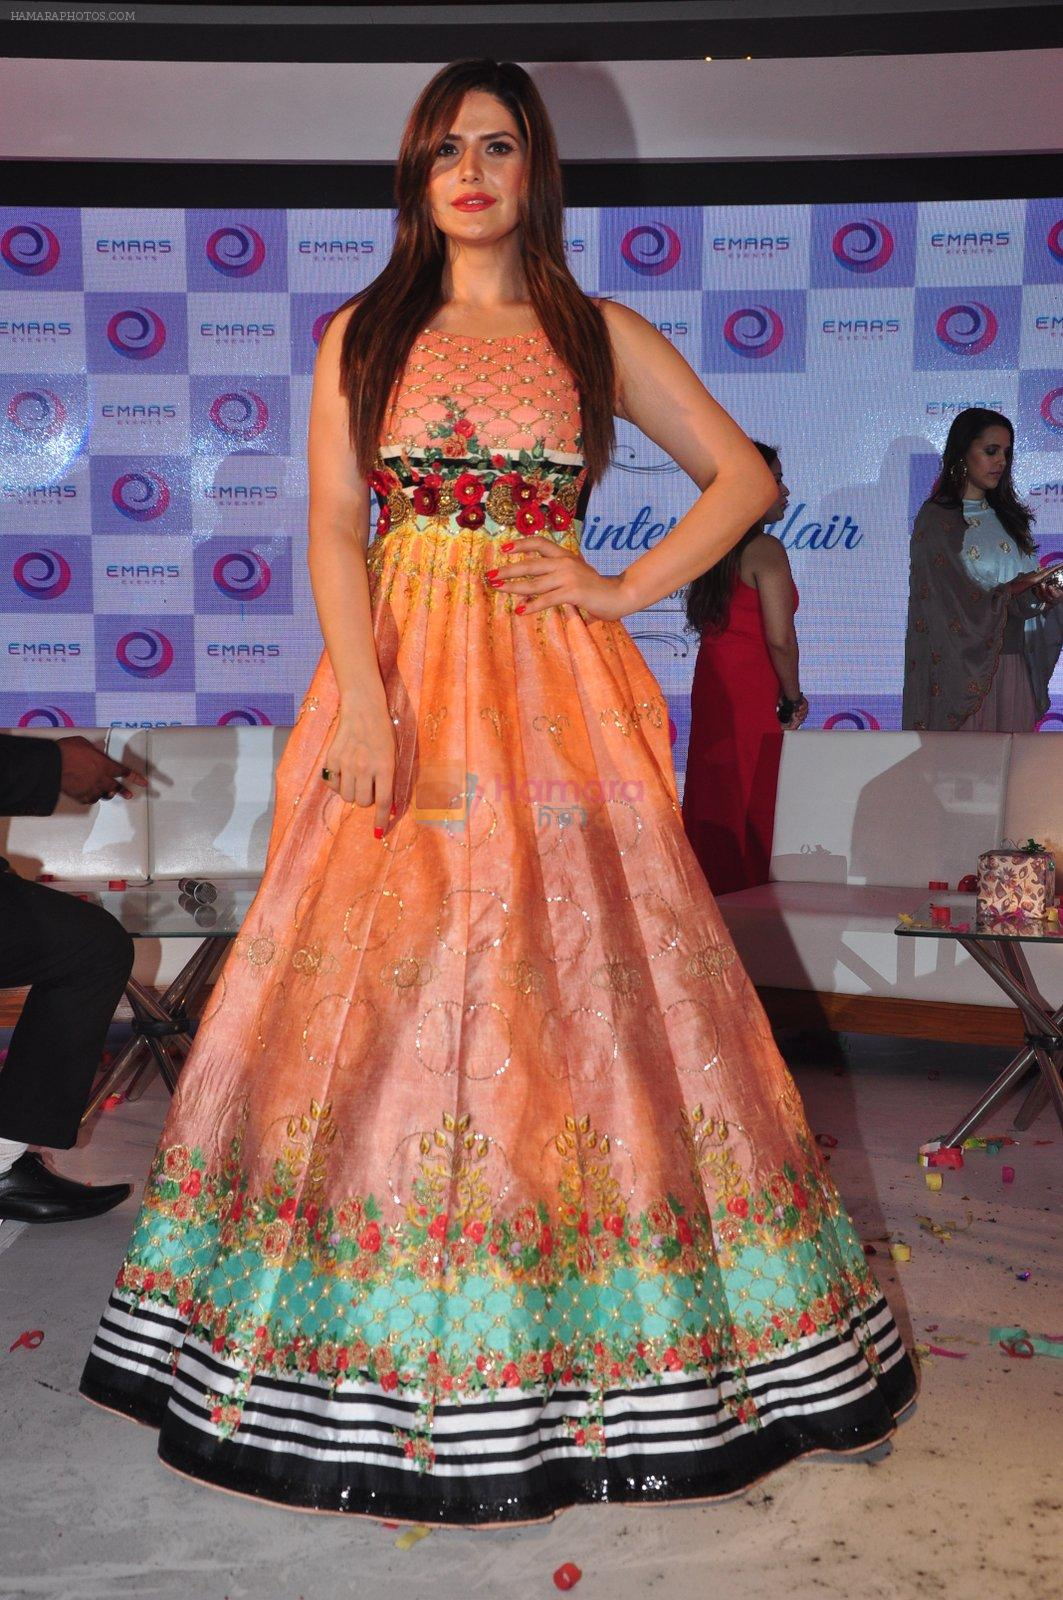 Zarine Khan at the Emars events press conference in Pune on 18th Sept 2016